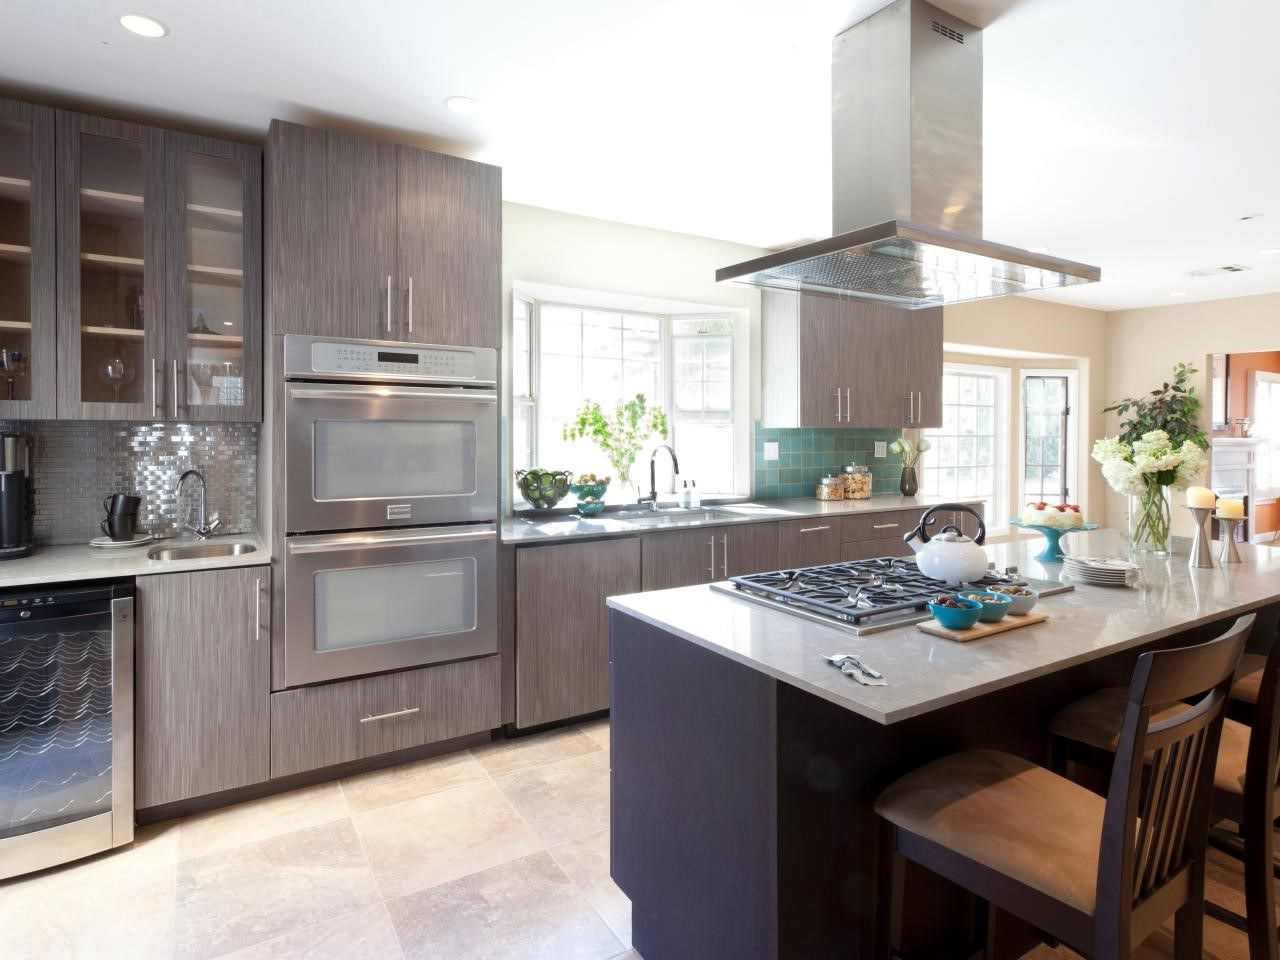 Should kitchen cabinets go to the ceiling? Kitchen cabinet ...